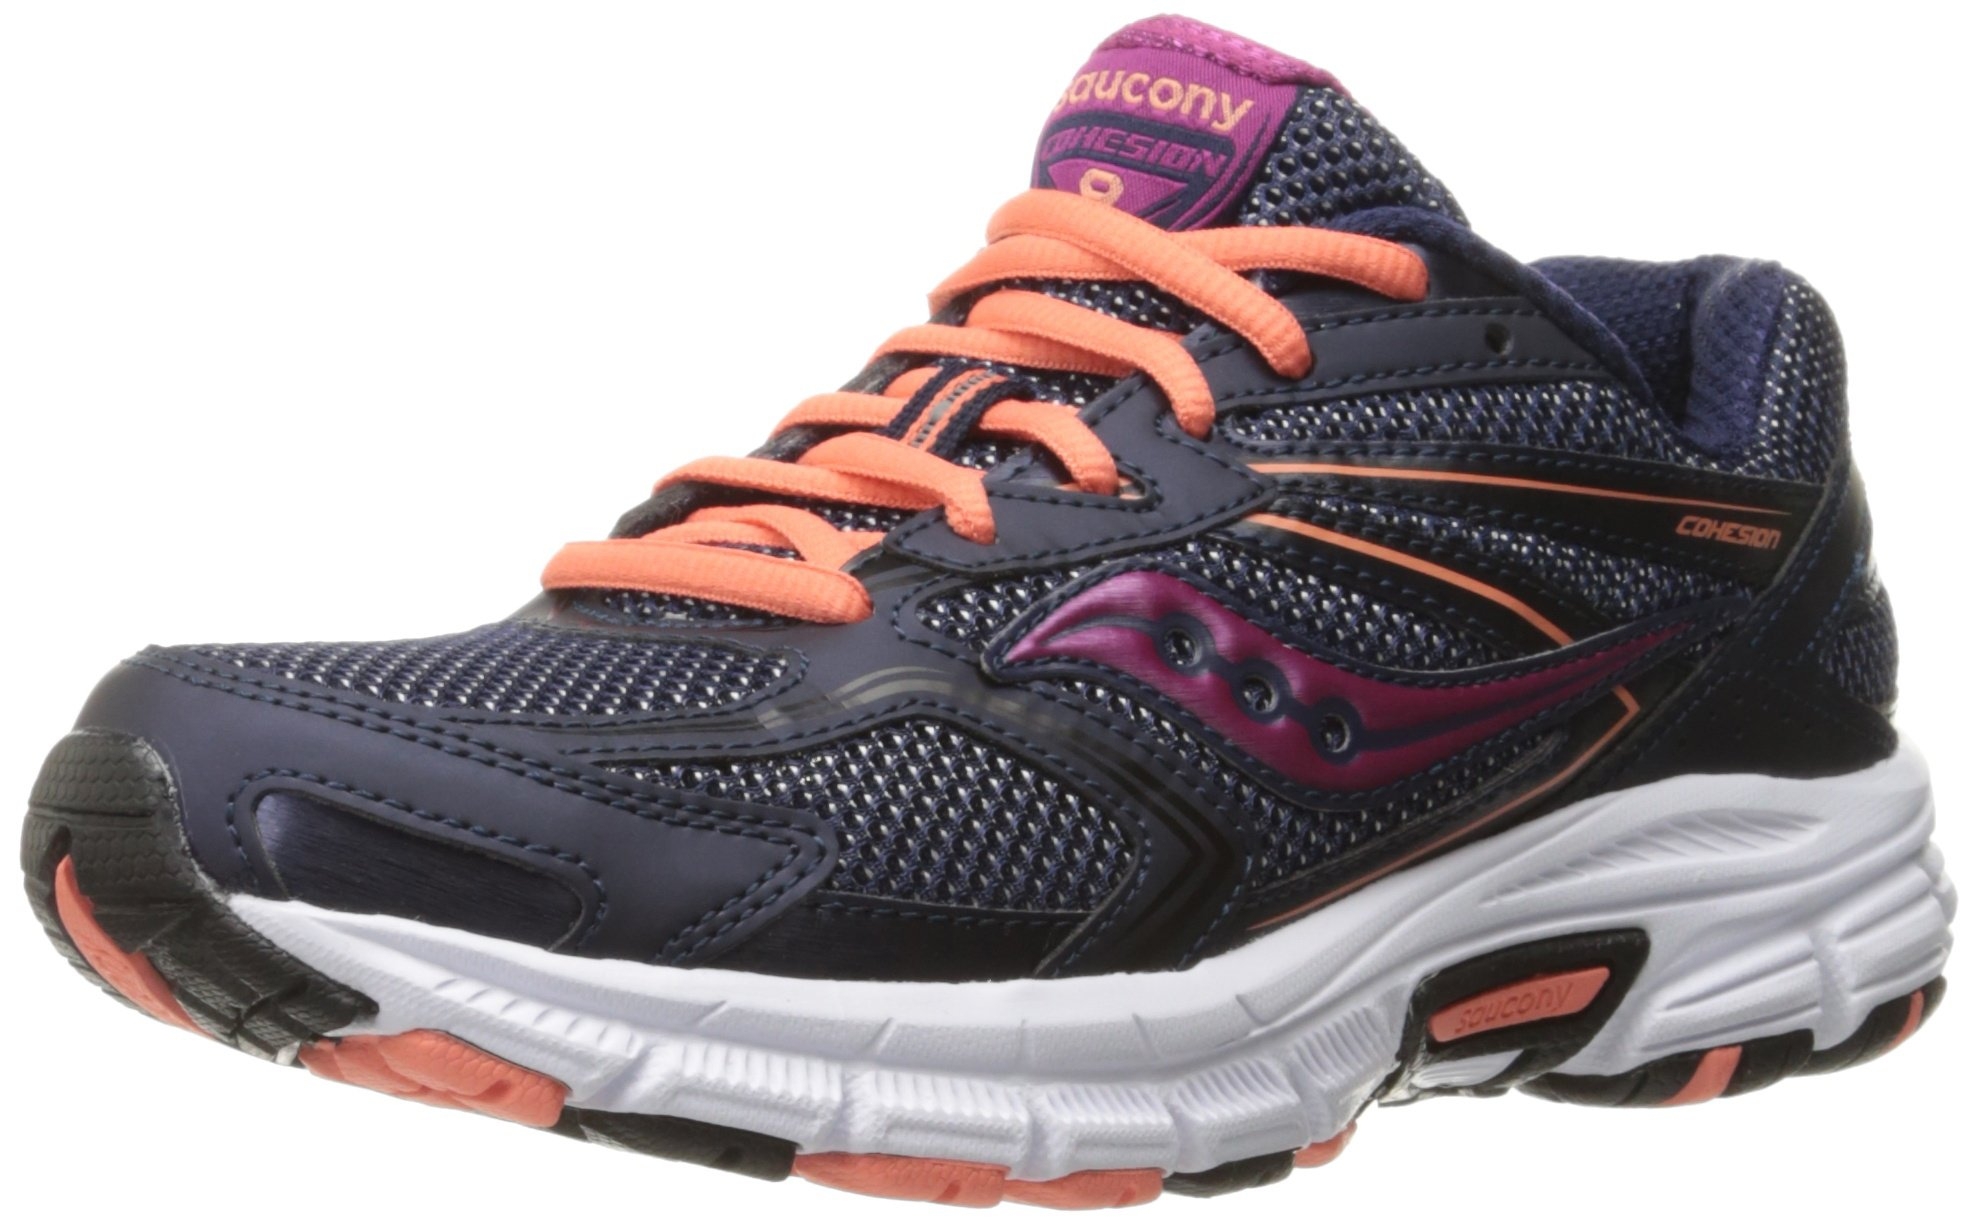 Saucony Women's Cohesion 9 Running Shoe, Navy/Coral/Pink, 10 M US